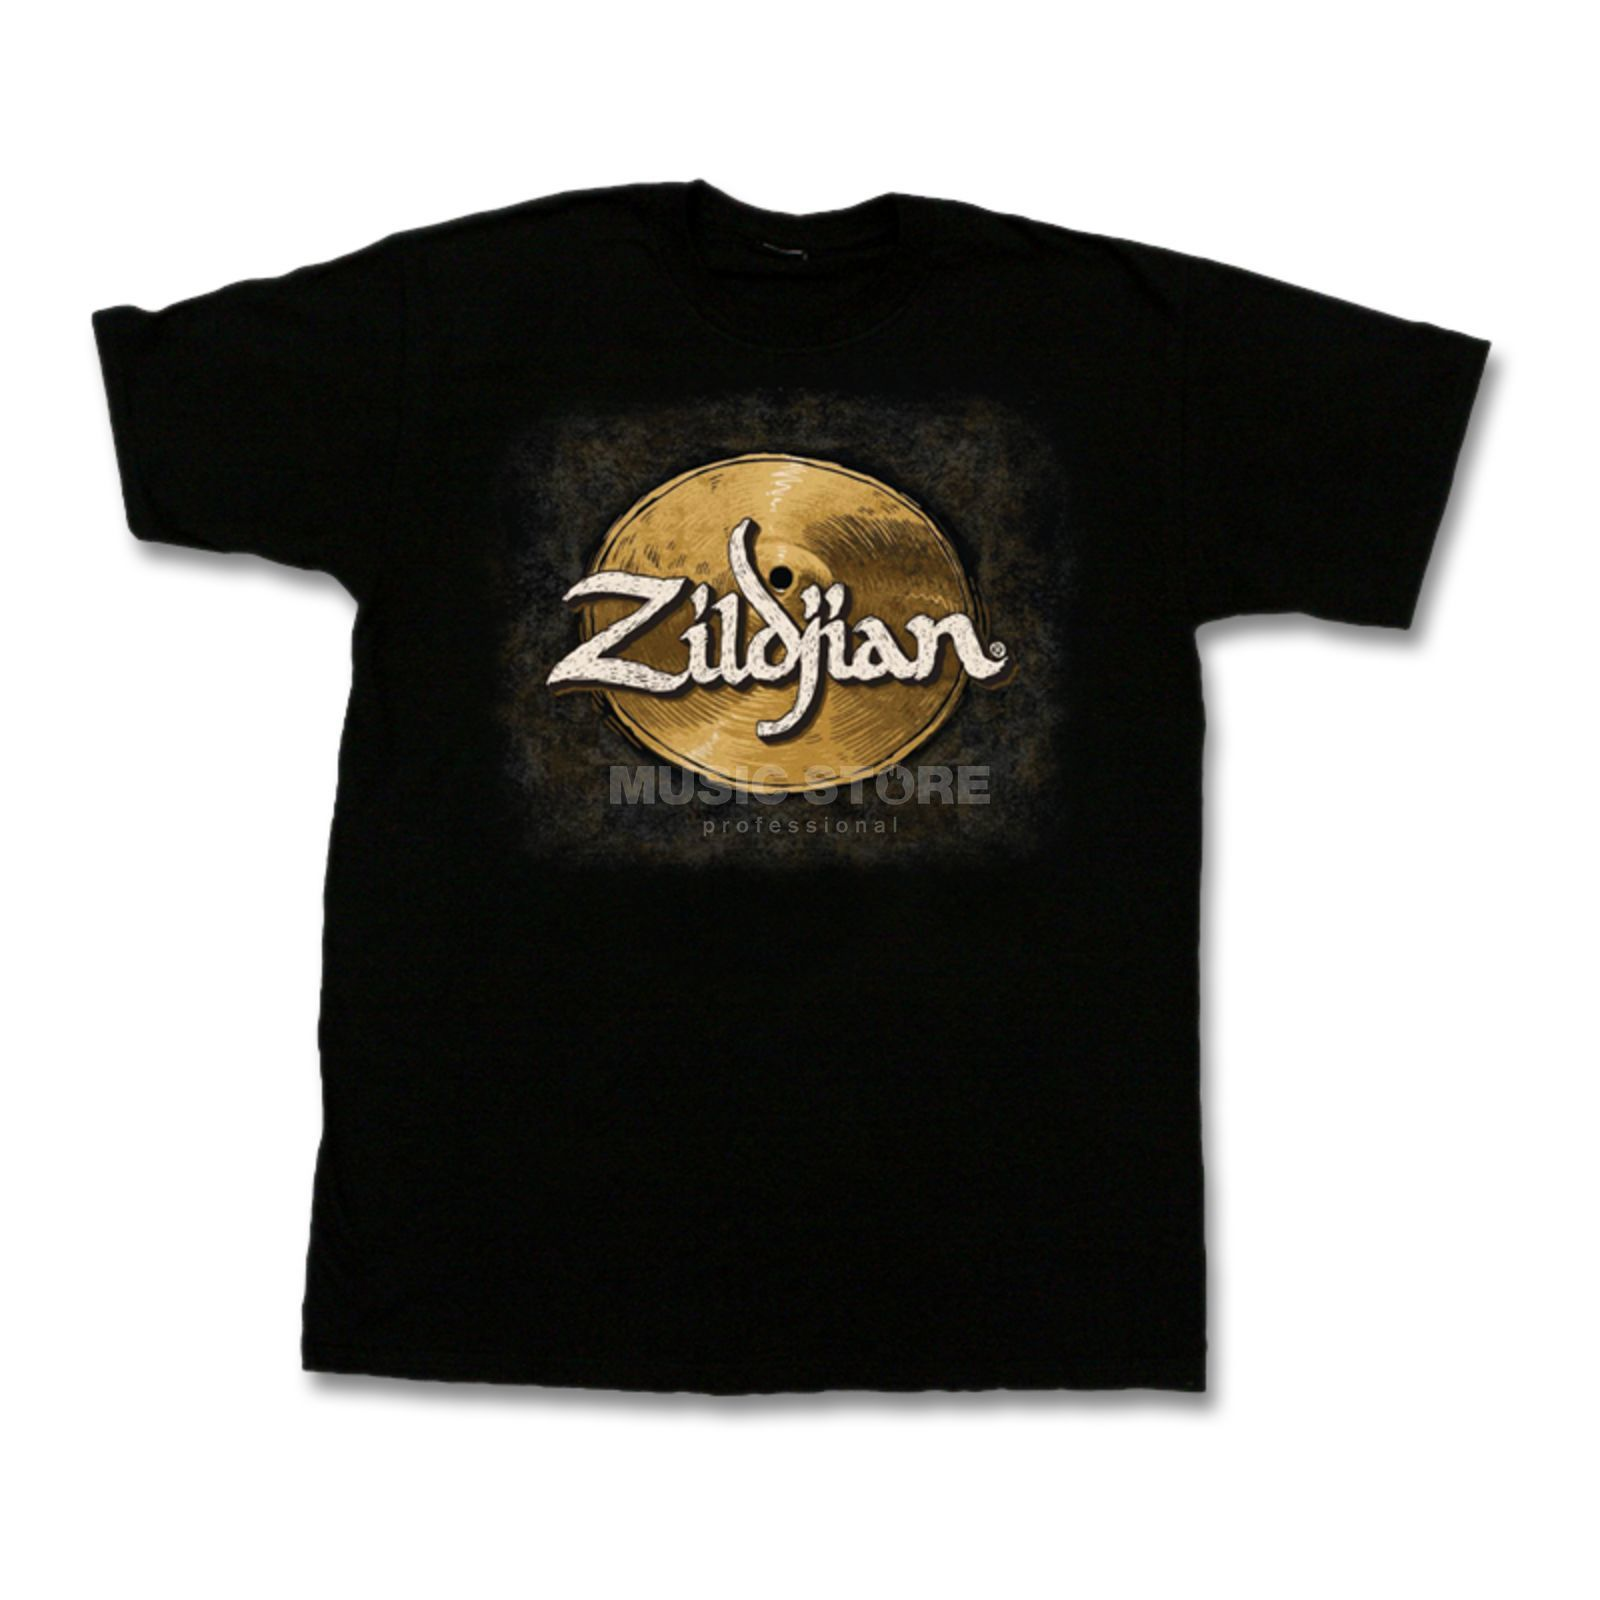 Zildjian T-Shirt Hand-Drawn Black, Large Изображение товара